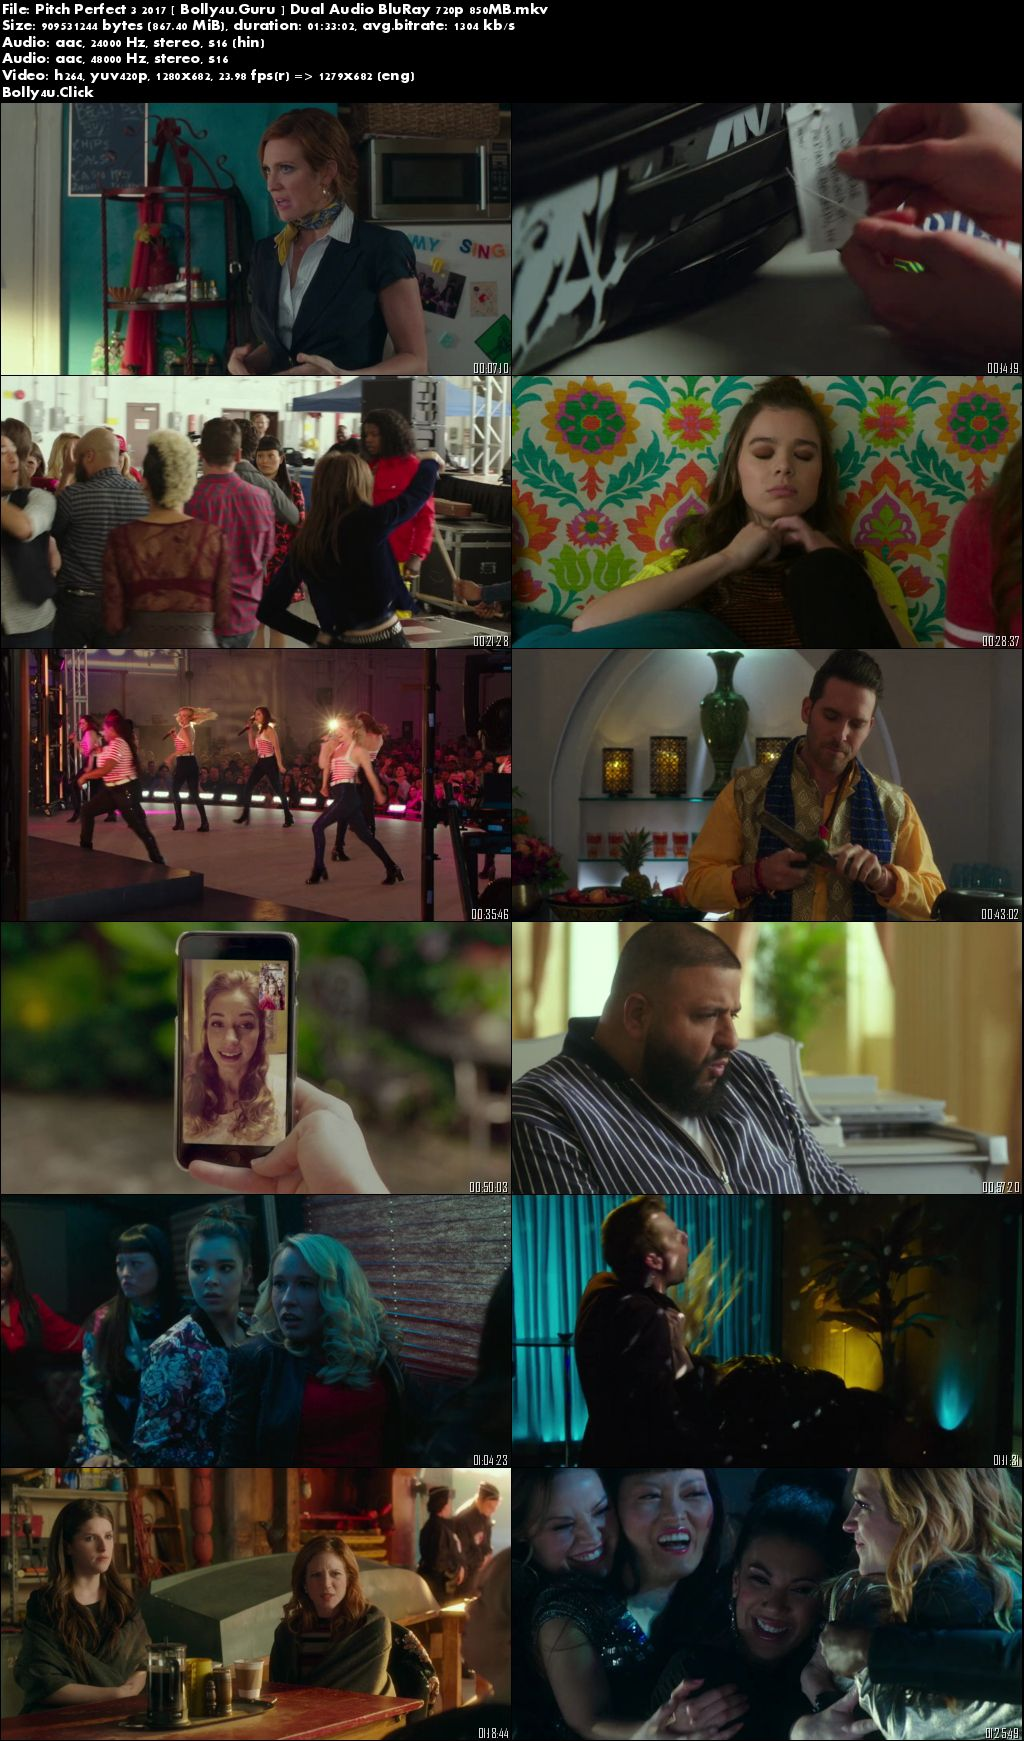 Pitch Perfect 3 2017 Hindi 480p 350Mb BluRay Dual Audio Download Download